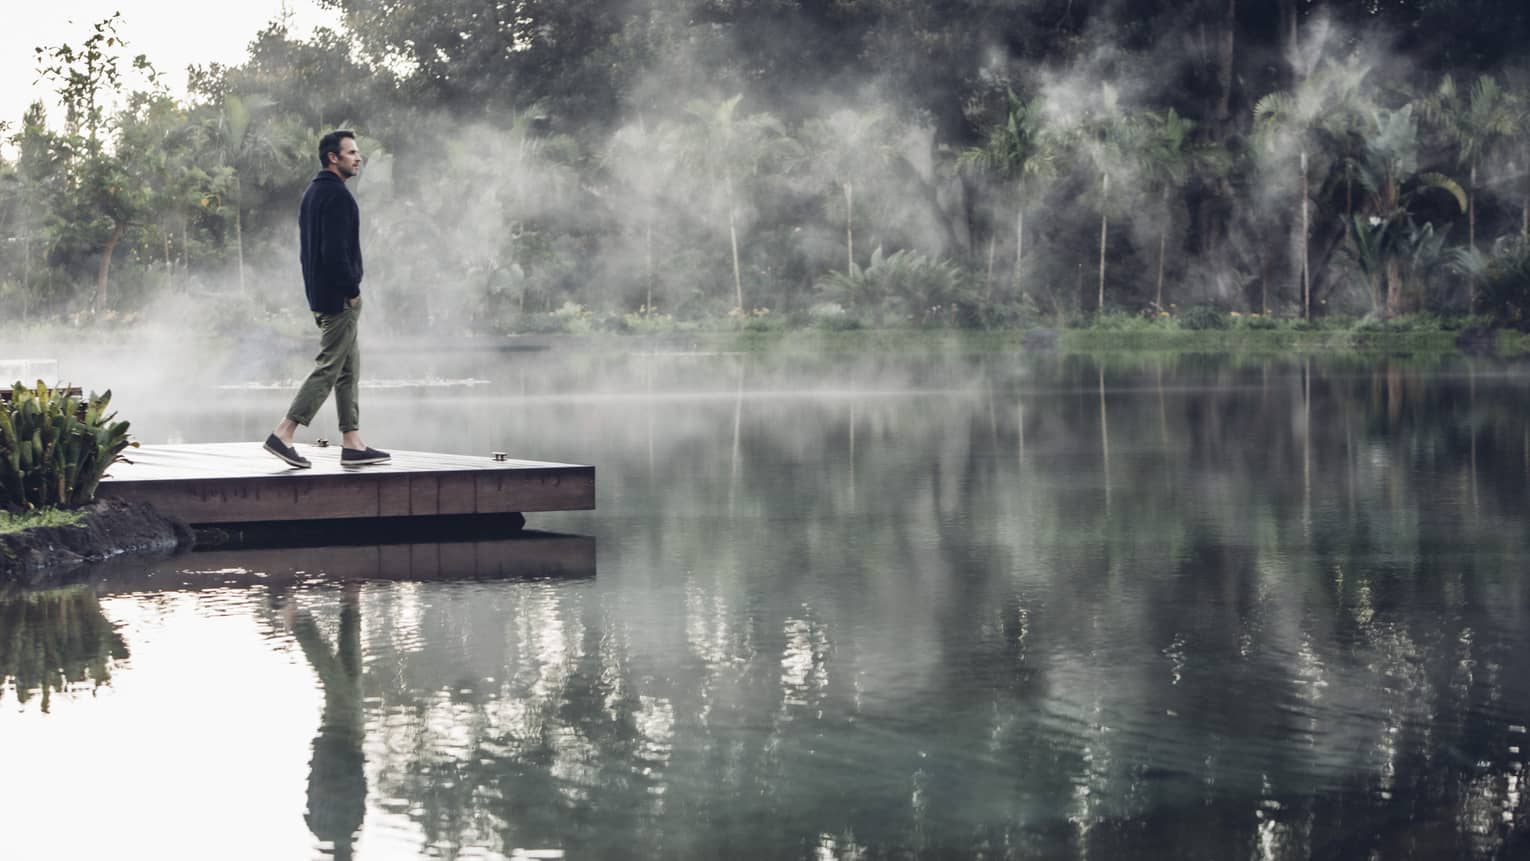 Man walks down a dock as steam rises off the water's surface, his reflection clearly visible